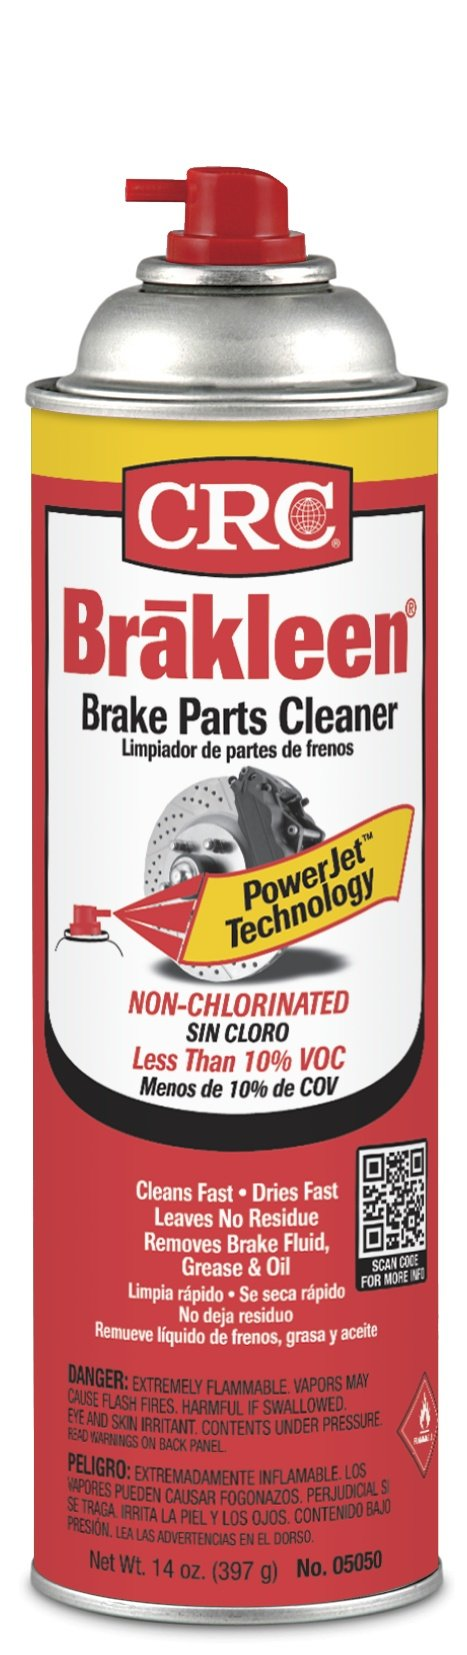 CRC 05050 Brakleen Non-Chlorinated Brake Parts Cleaner, 14 Wt Oz 12/EA by CRC